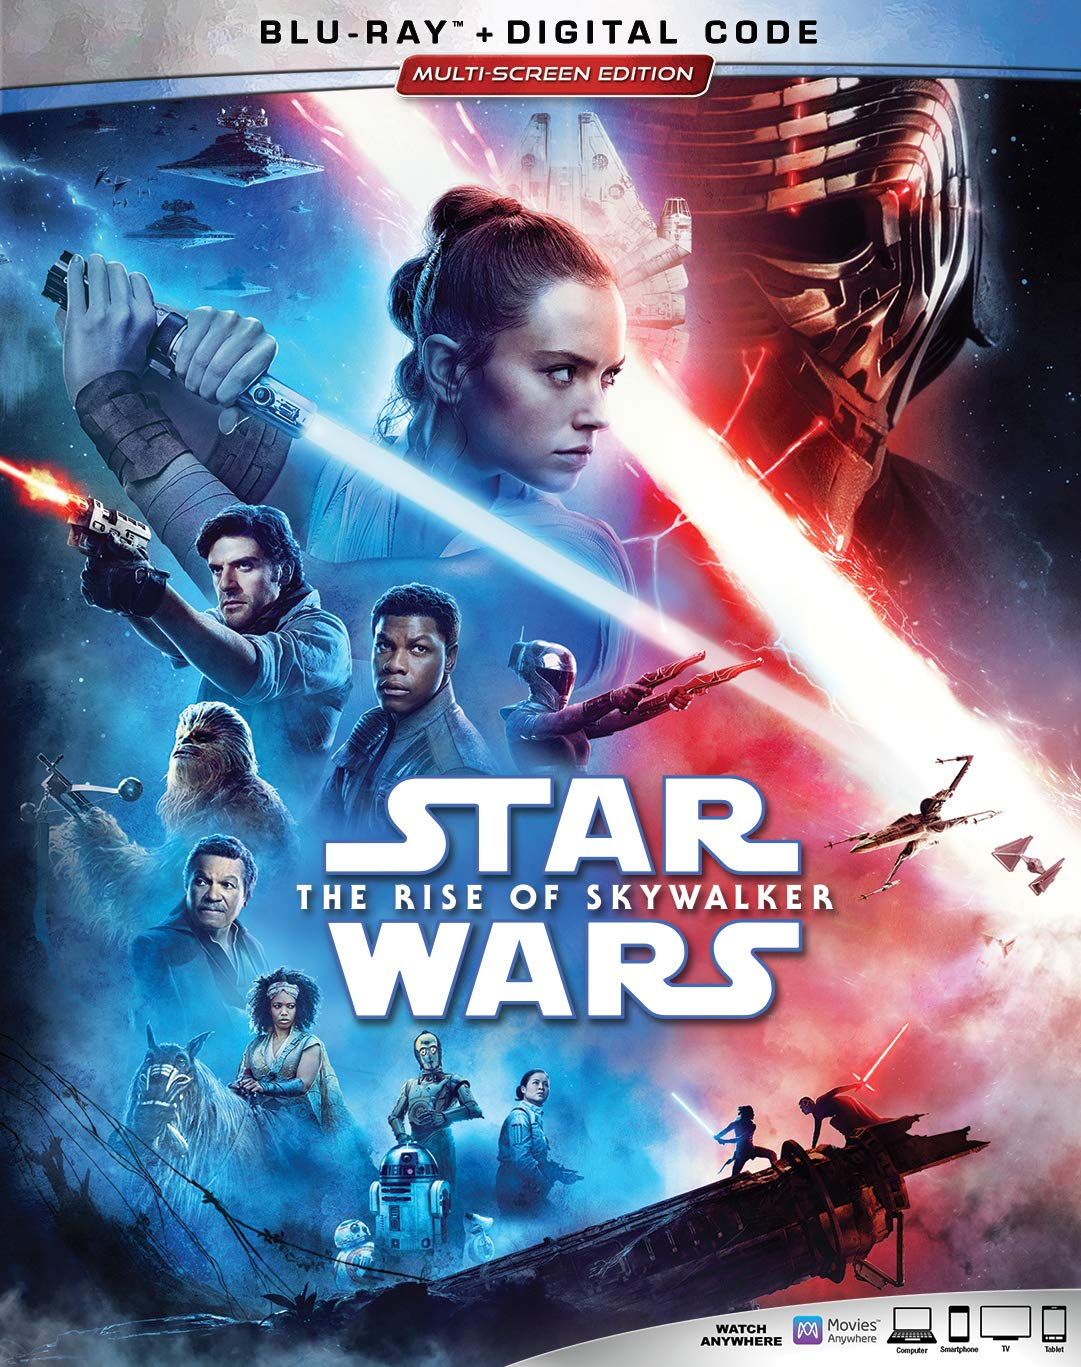 Star Wars The Rise of Skywalker Blu Ray DVD - Amazon